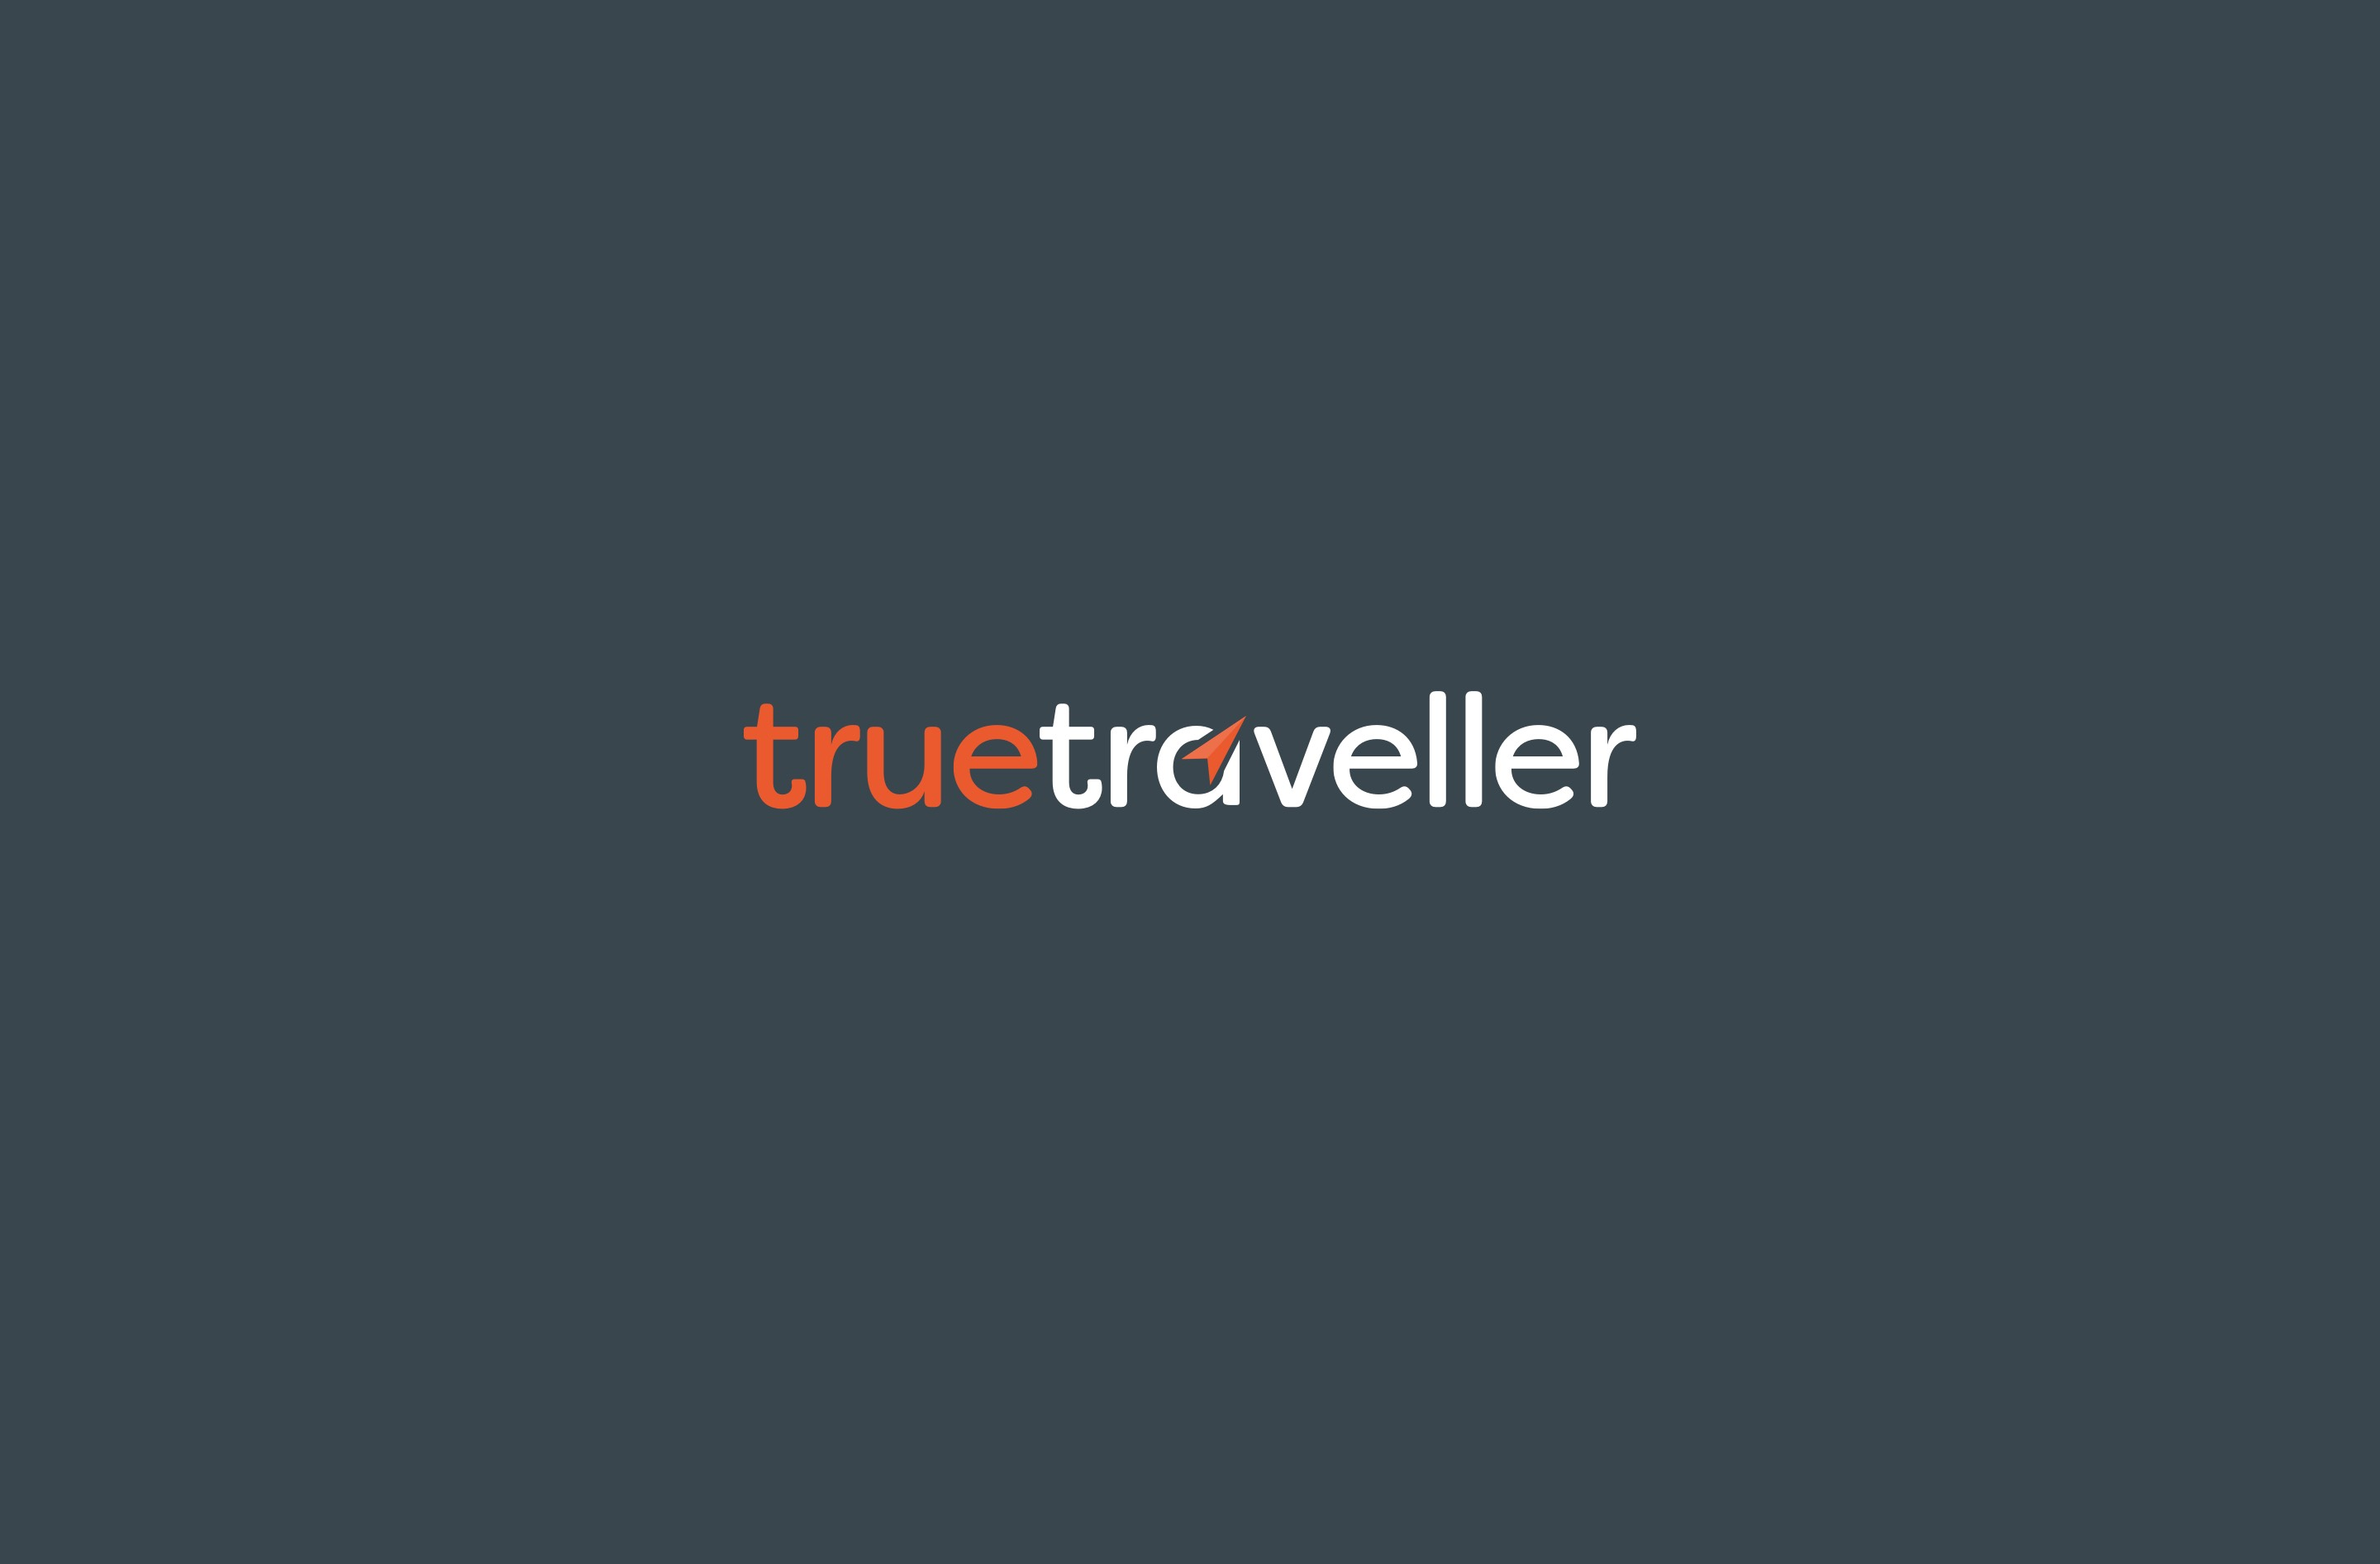 True Traveller's logo design